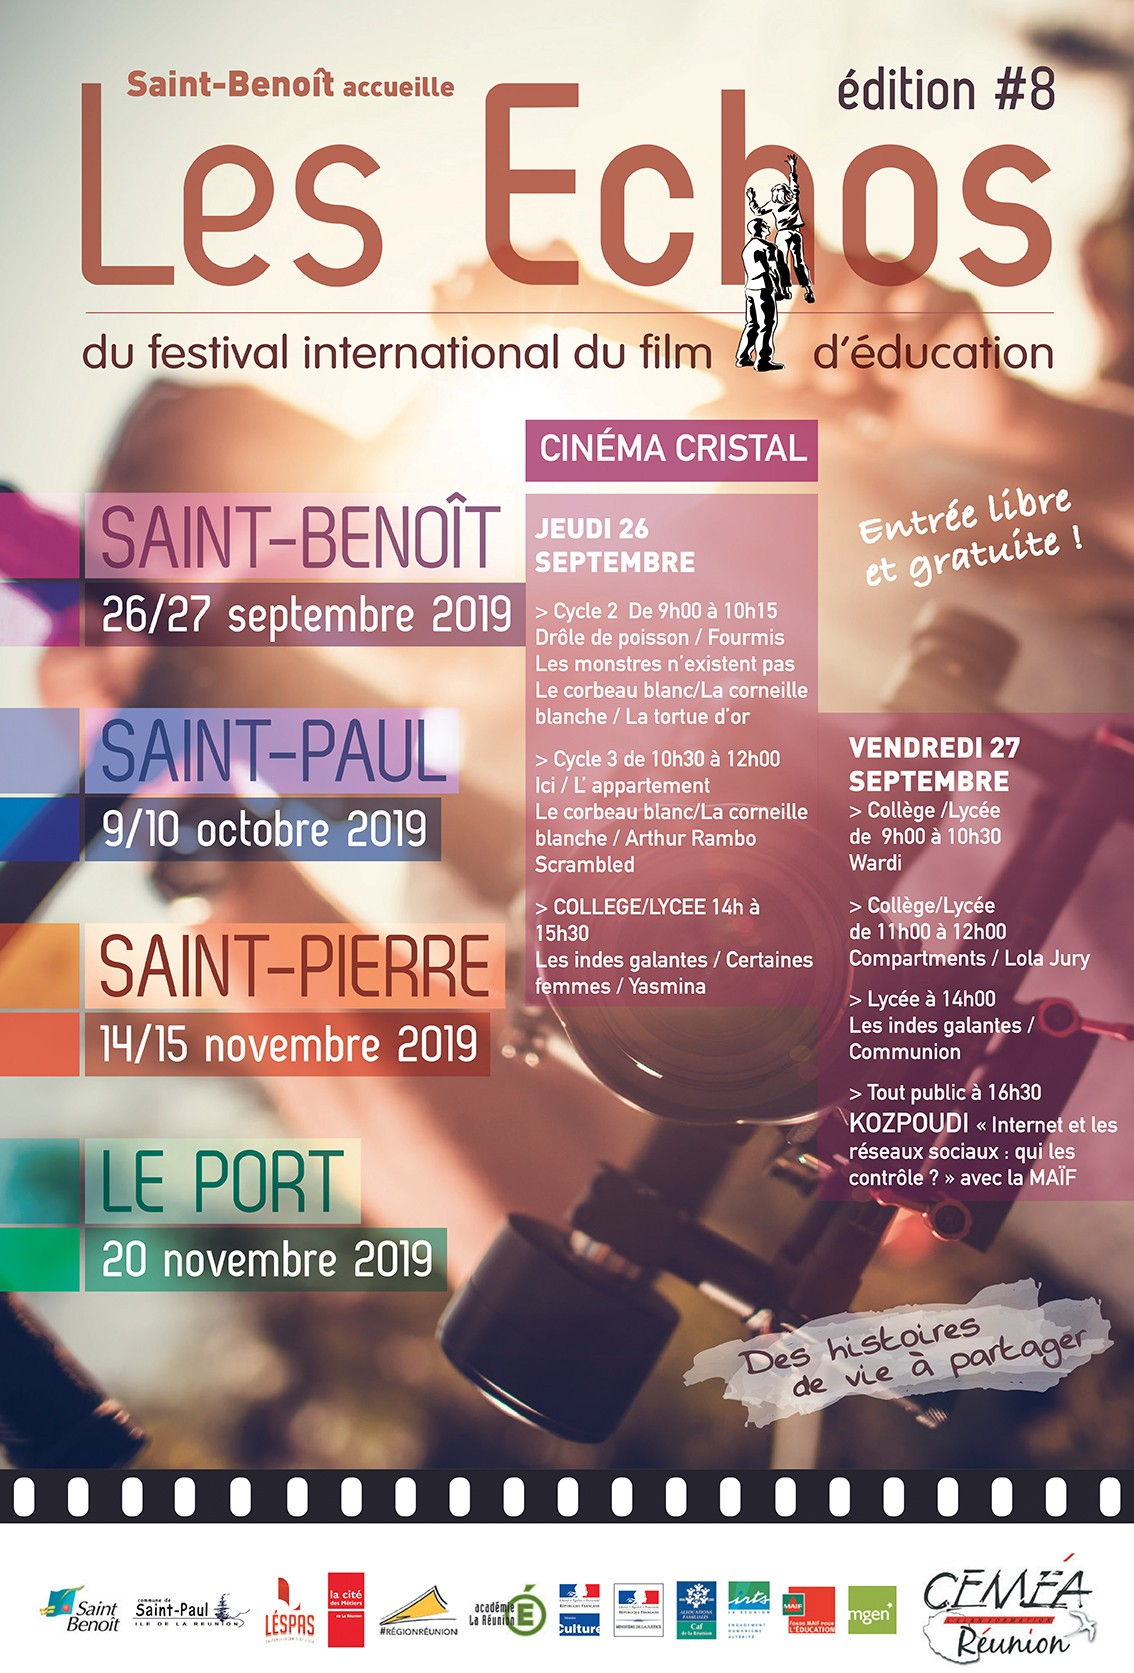 Les échos du festival international du film d'éducation